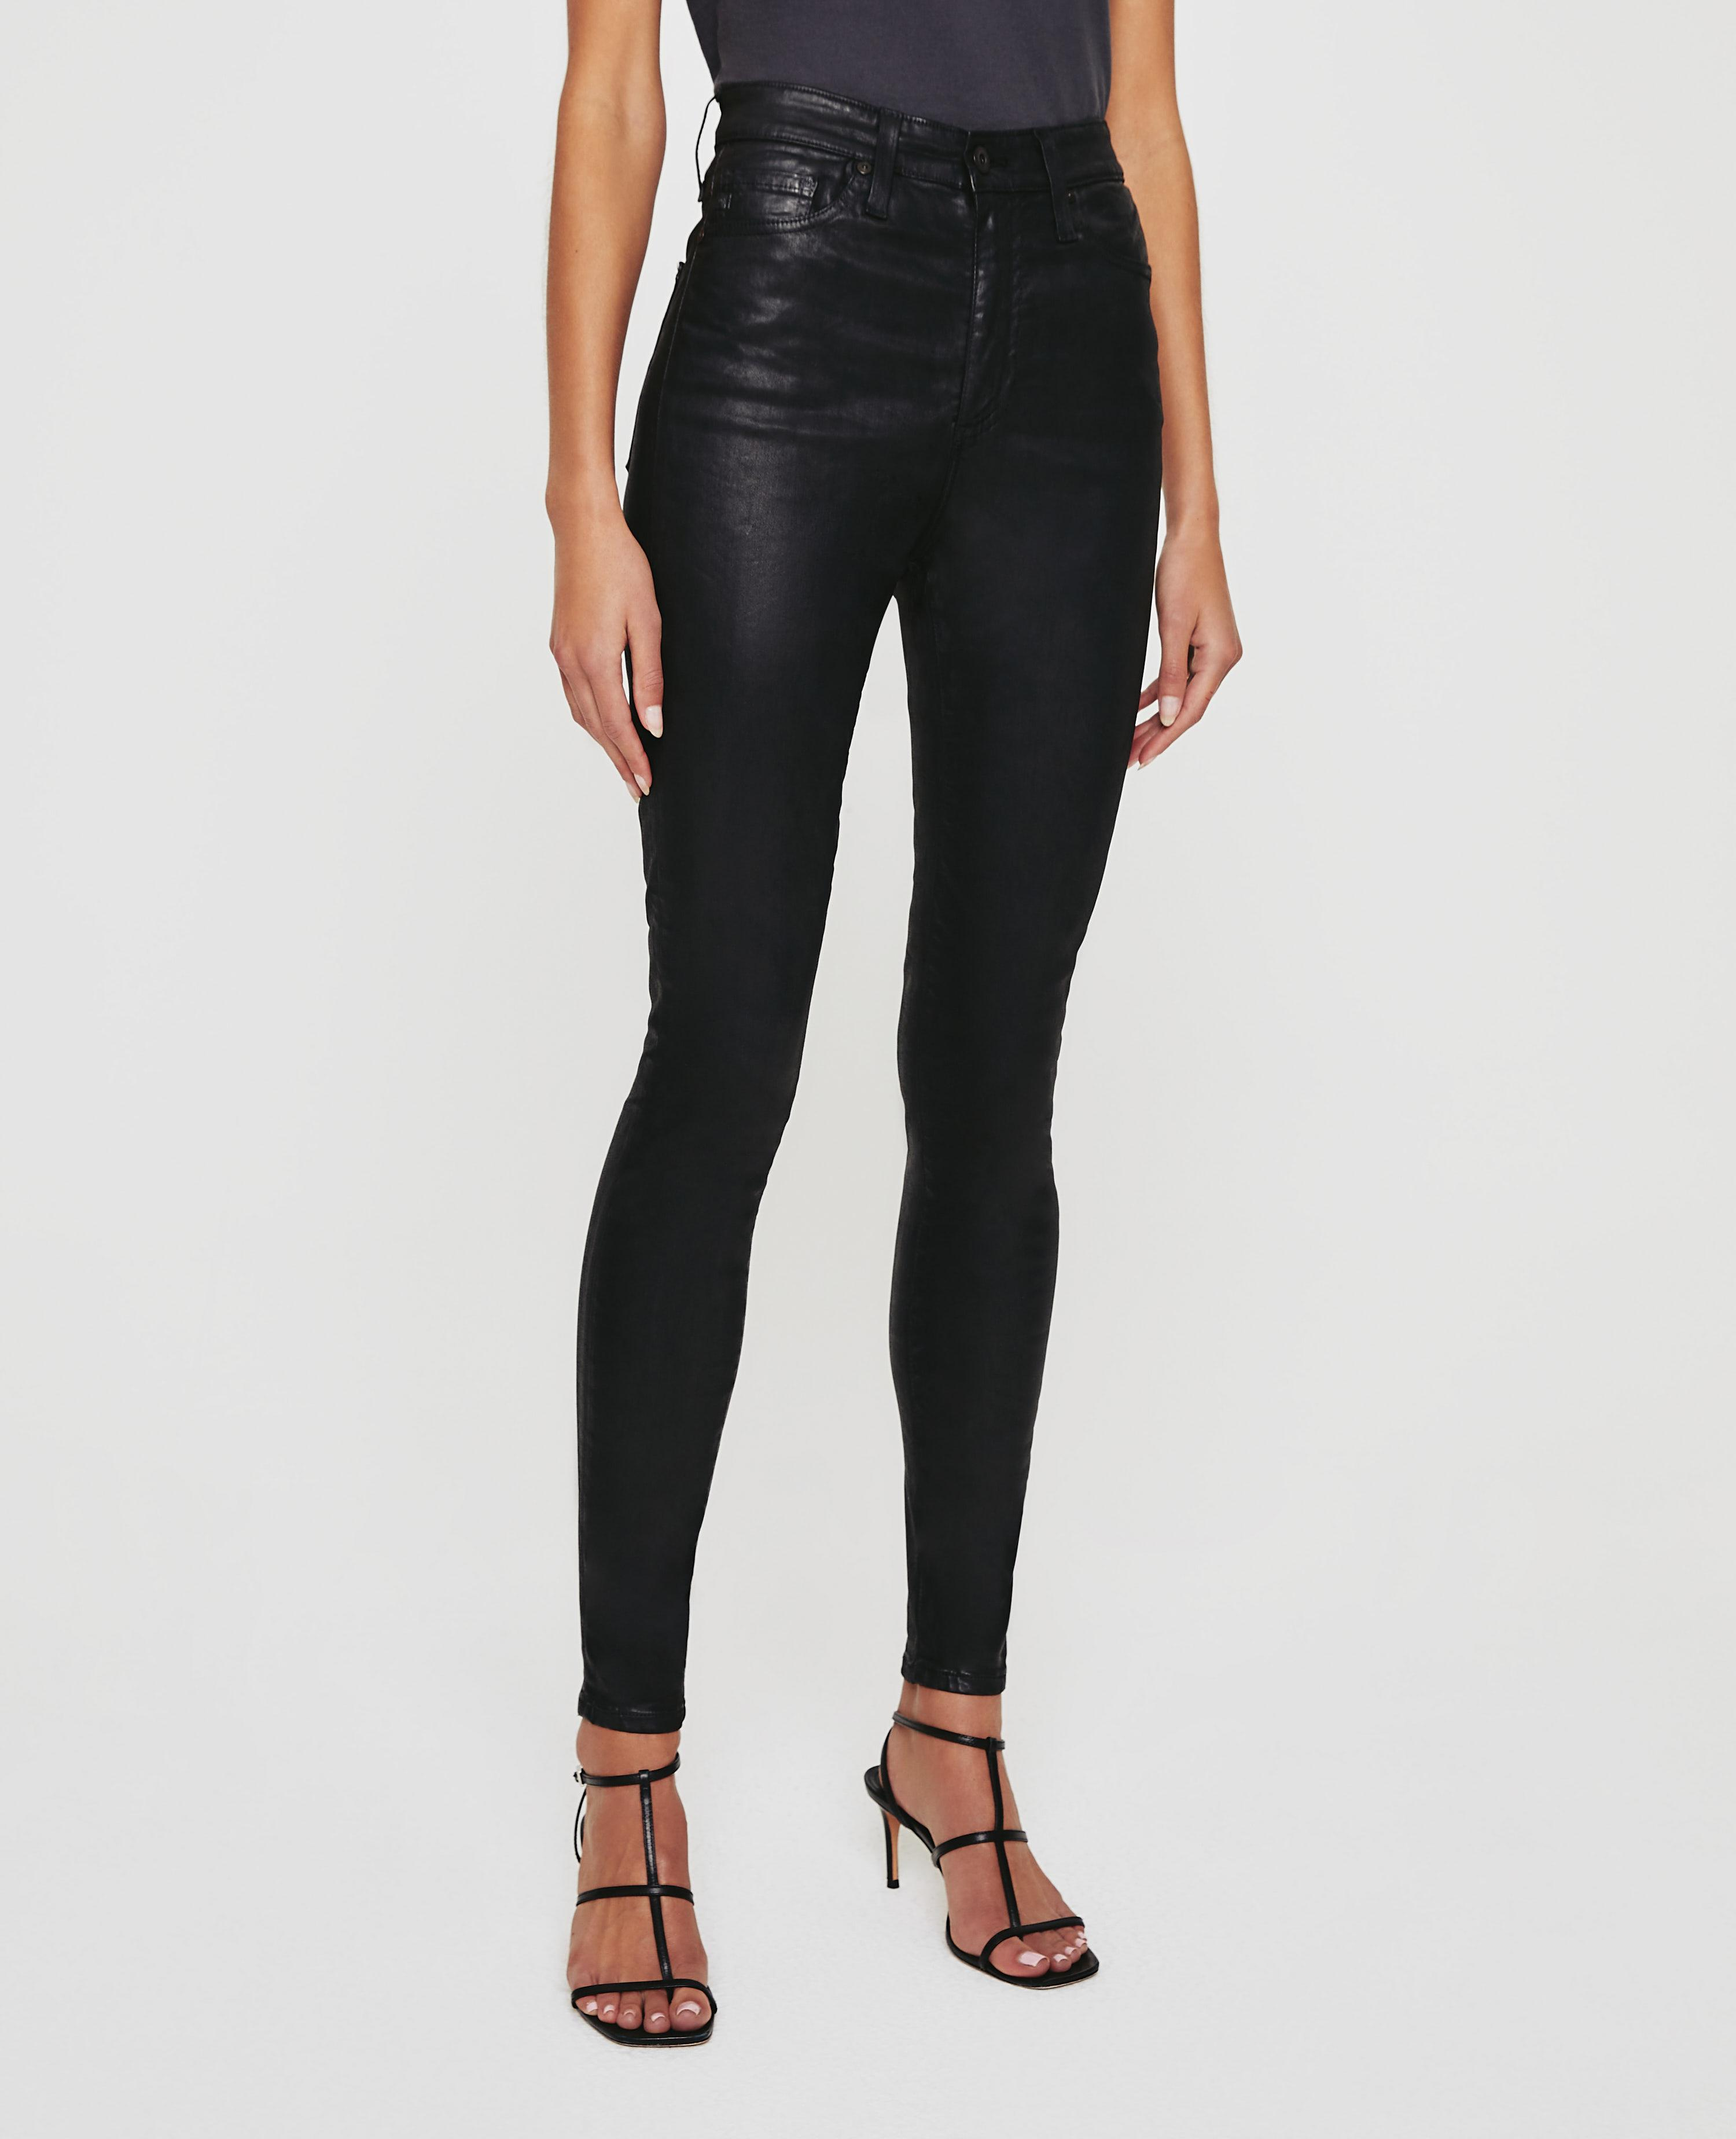 The Leatherette Mila